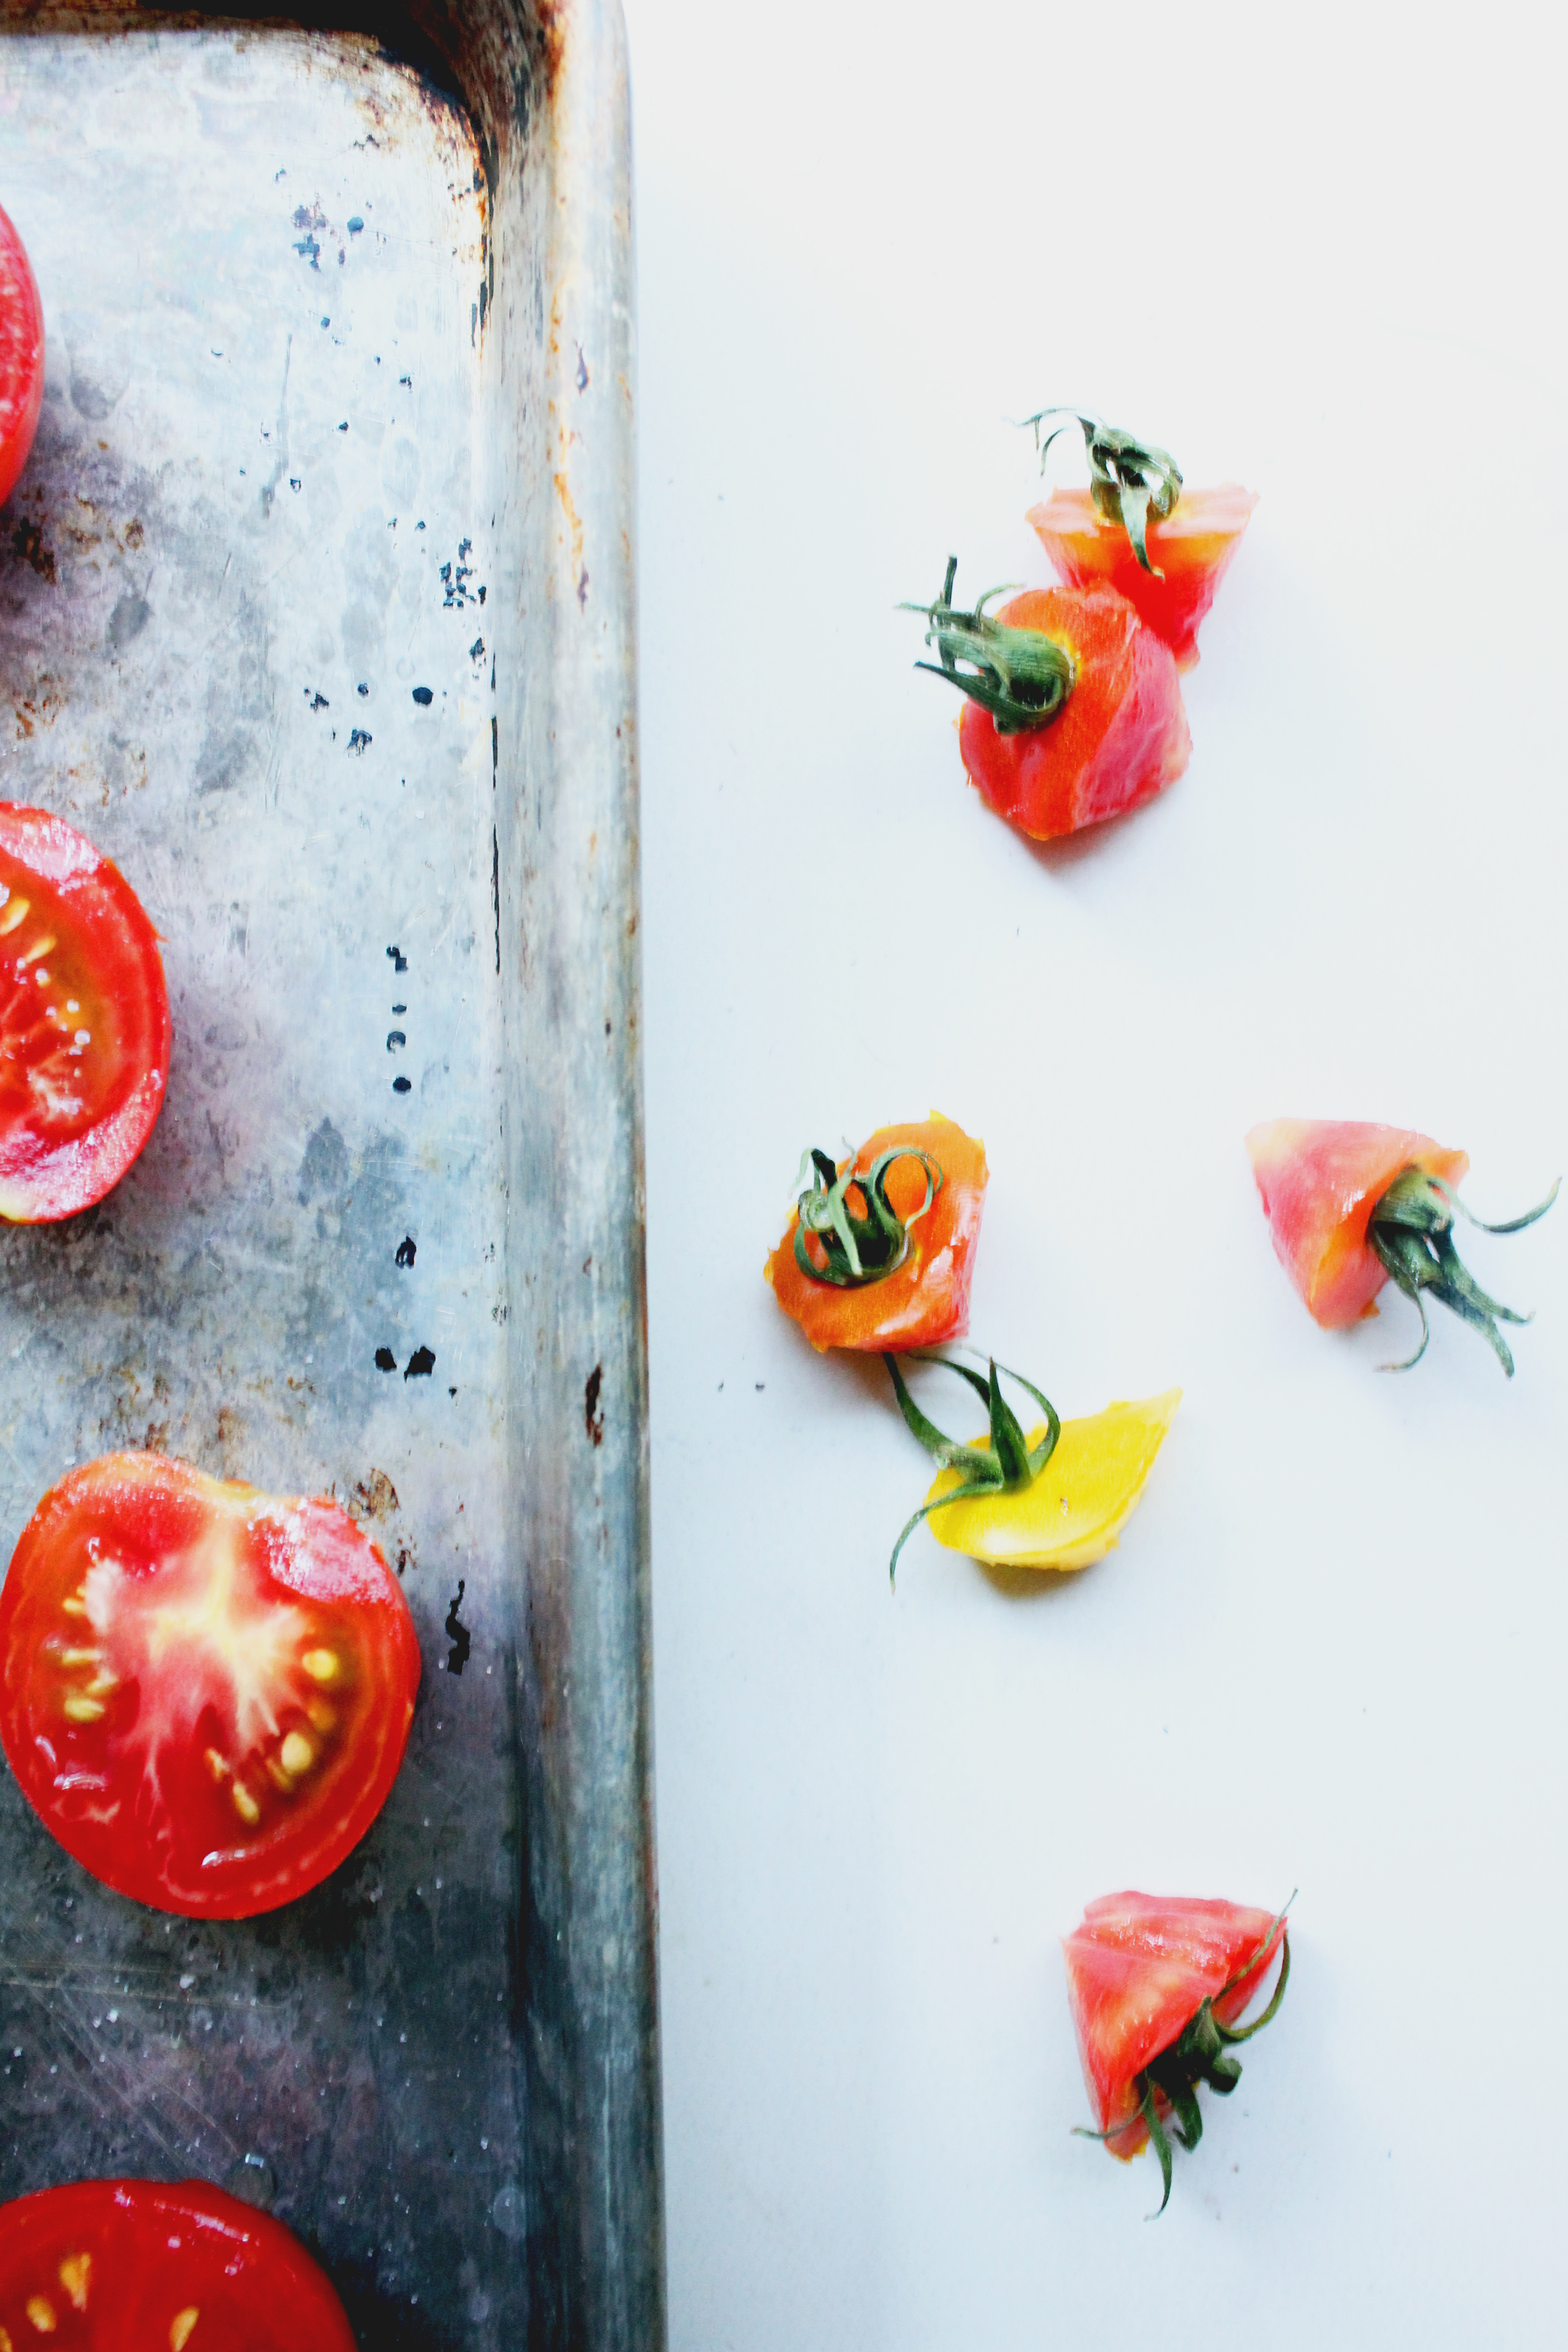 oven-roasted-tomatoes-6.jpg